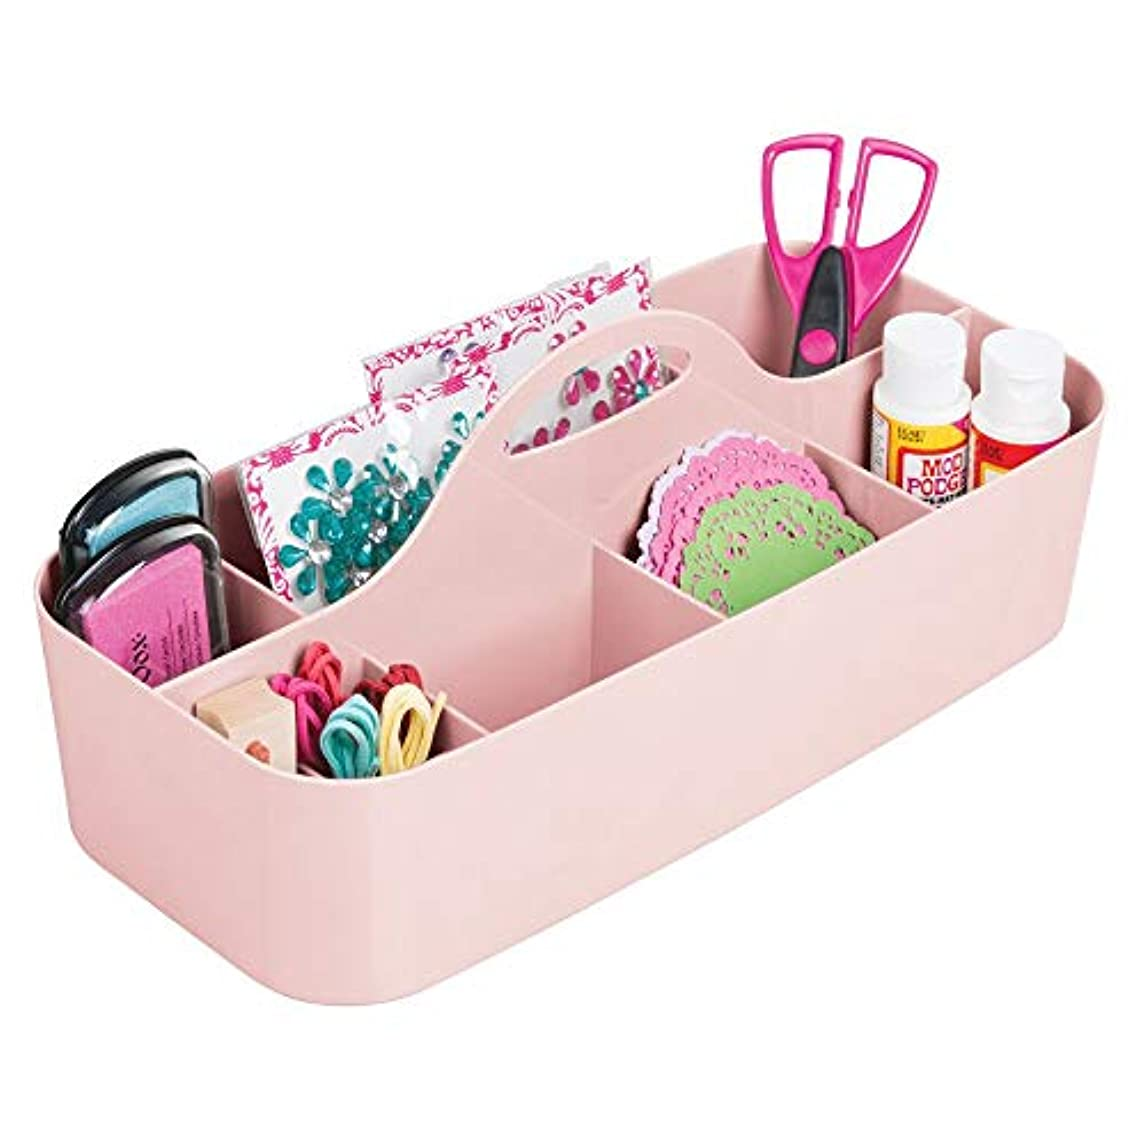 mDesign Plastic Portable Craft Storage Organizer Caddy Tote, Divided Basket Bin for Craft, Sewing, Art Supplies - Holds Paint Brushes, Colored Pencils, Stickers, Glue - Large - Pink/Blush